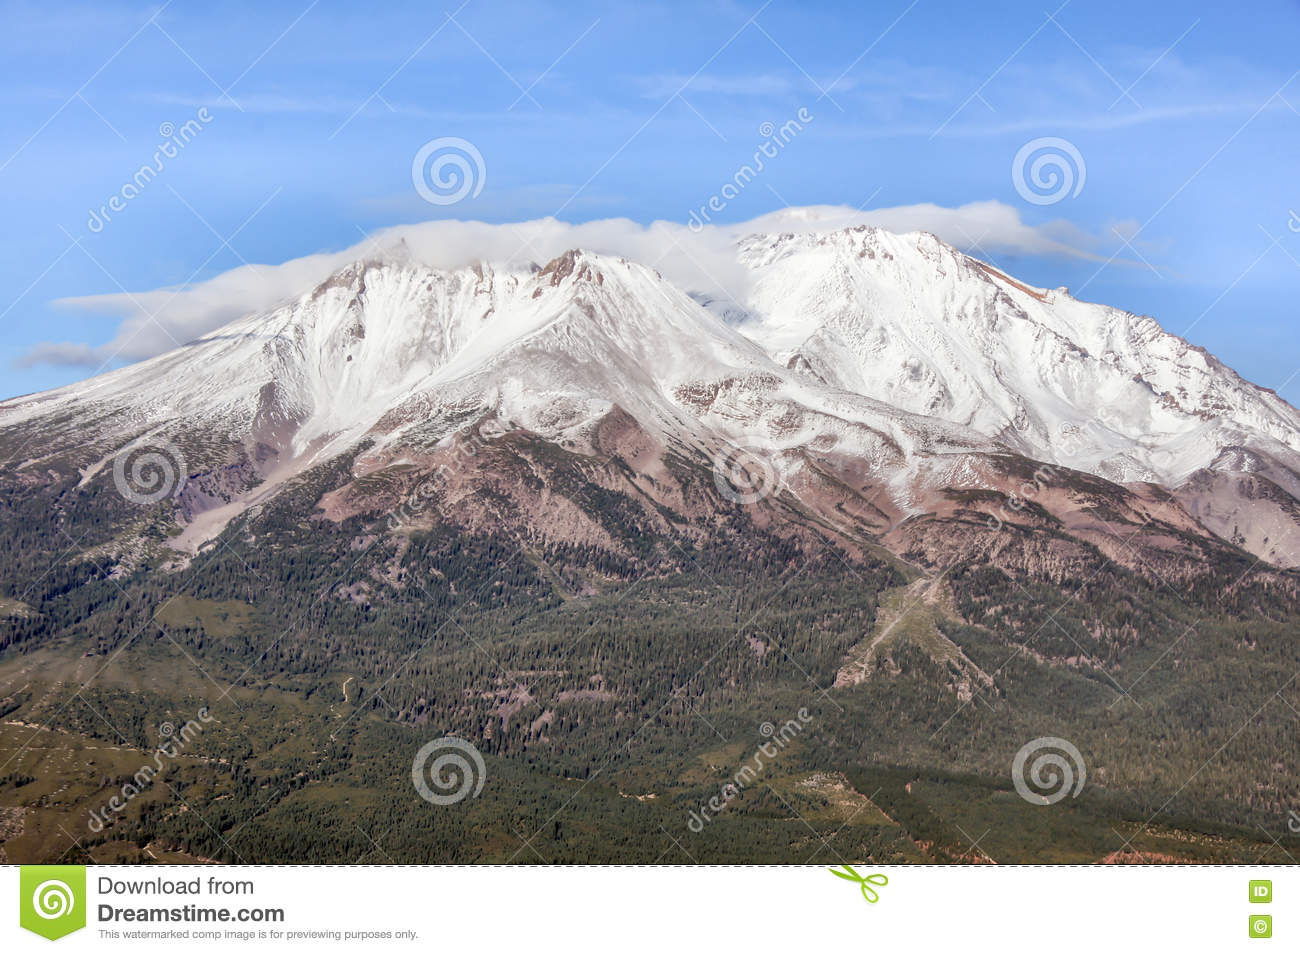 black singles in shasta county The trail then swings to the east and begins the final ascent to the summit of black butte here you add mount shasta to all the previously attained views maps.